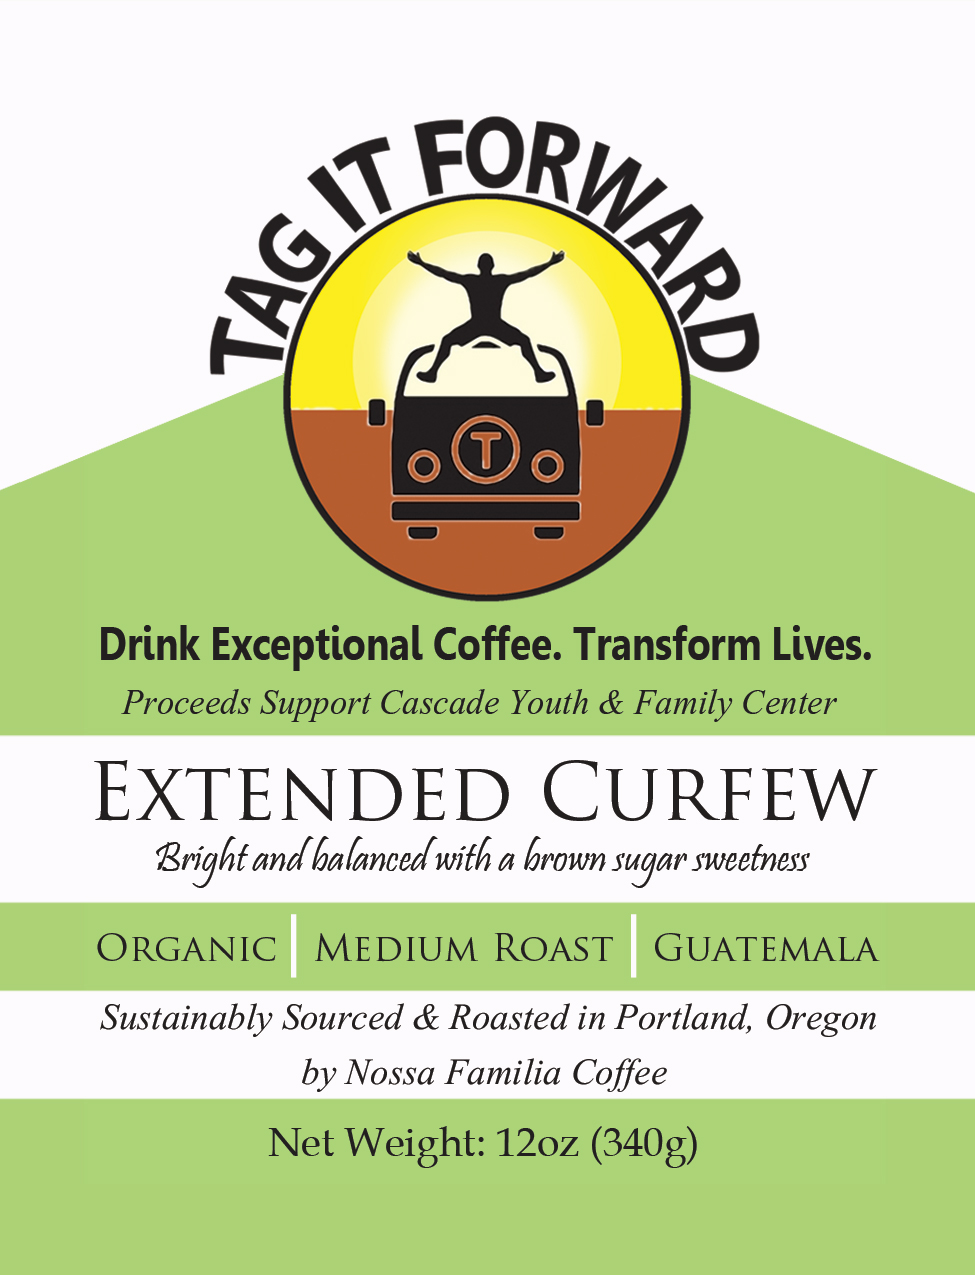 Tag it Forward Coffee Lable